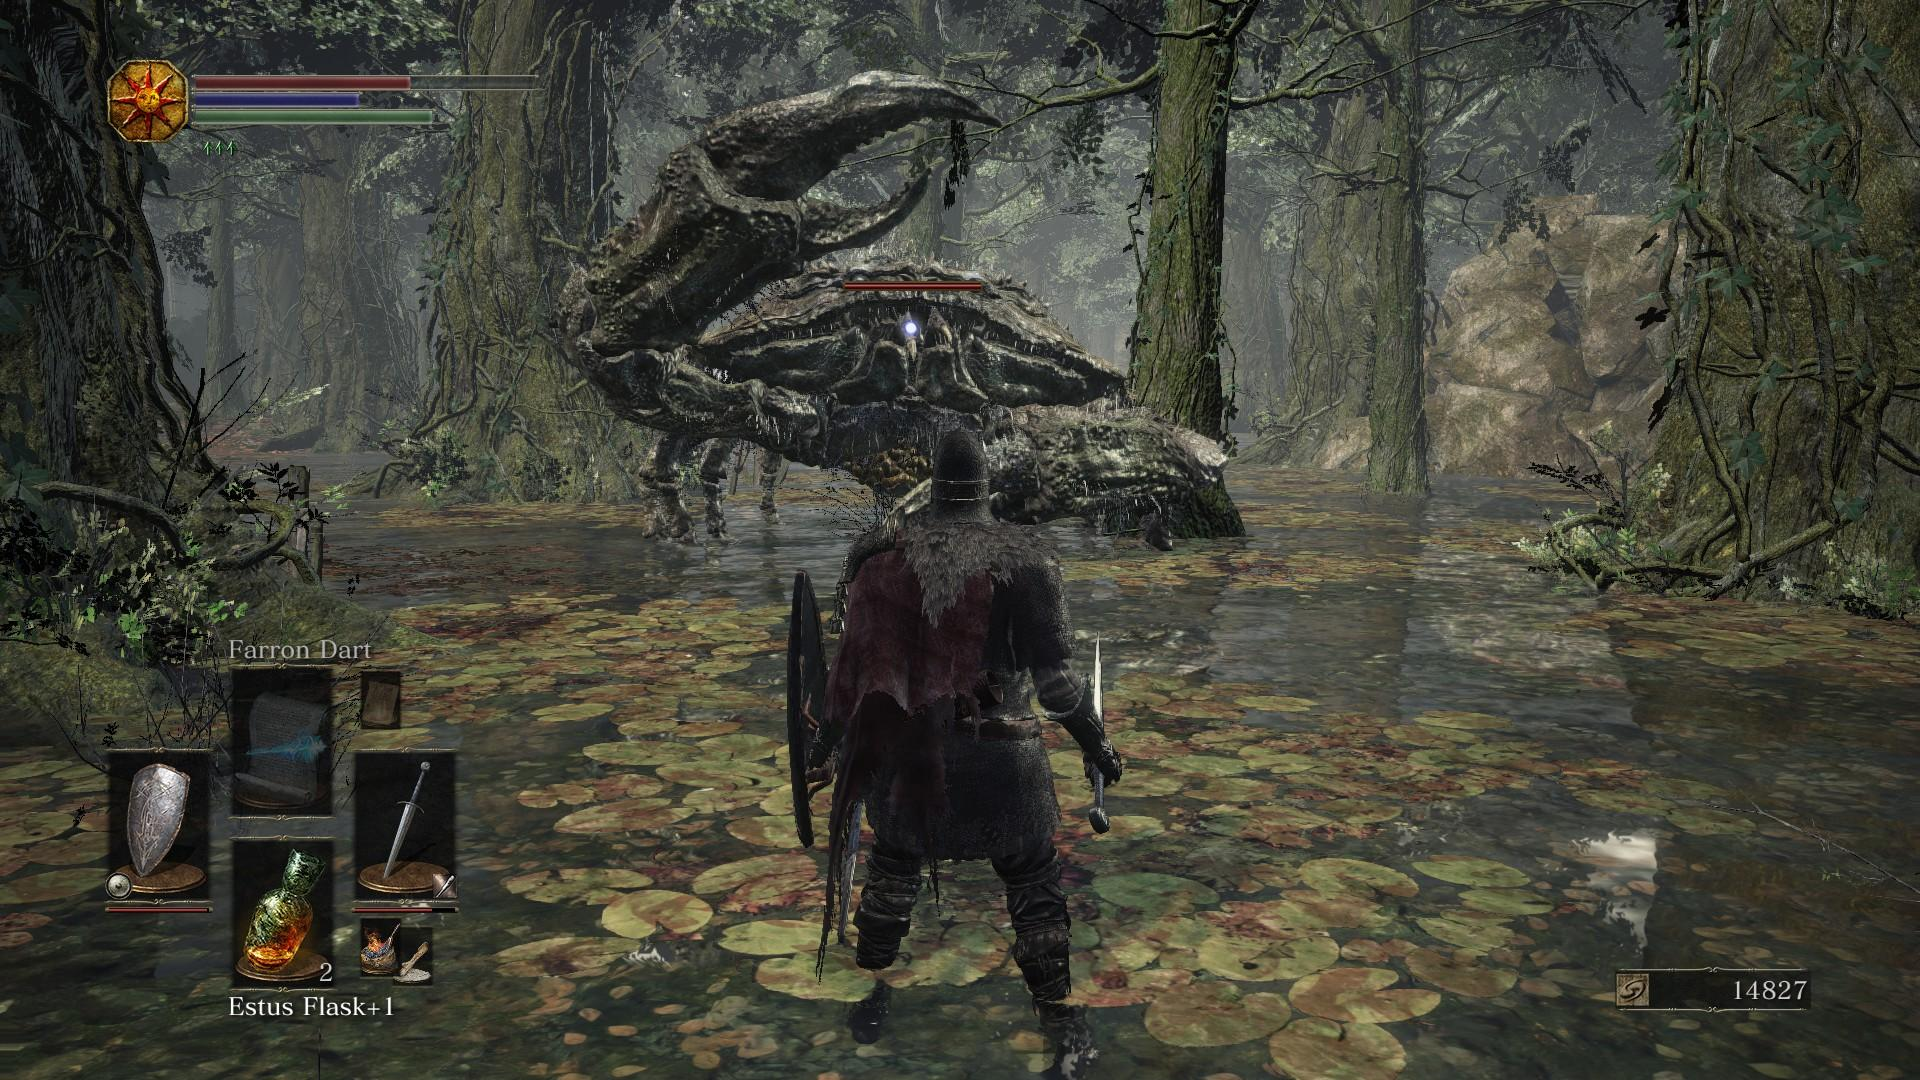 Dark Souls 3 Forest Swamp Crab